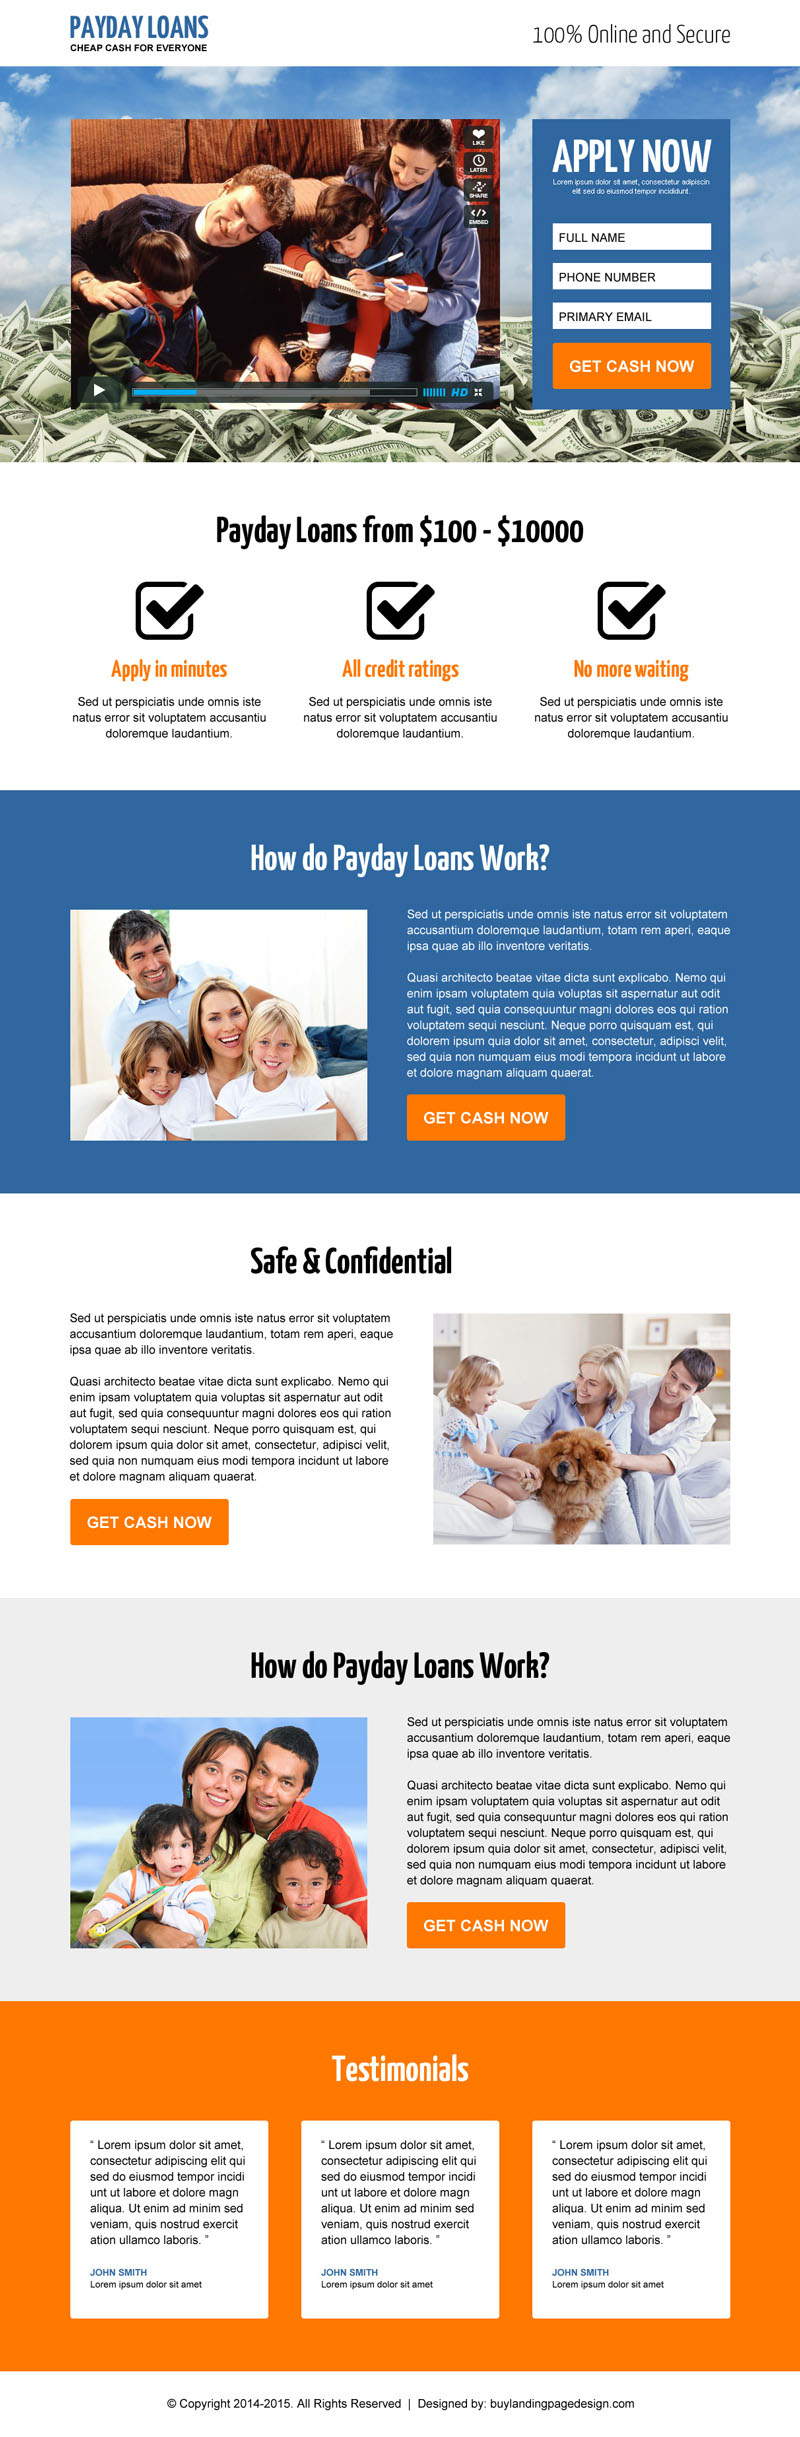 best-payday-loan-video-landing-page-design-template-to-capture-lead-and-increase-sales-021_1